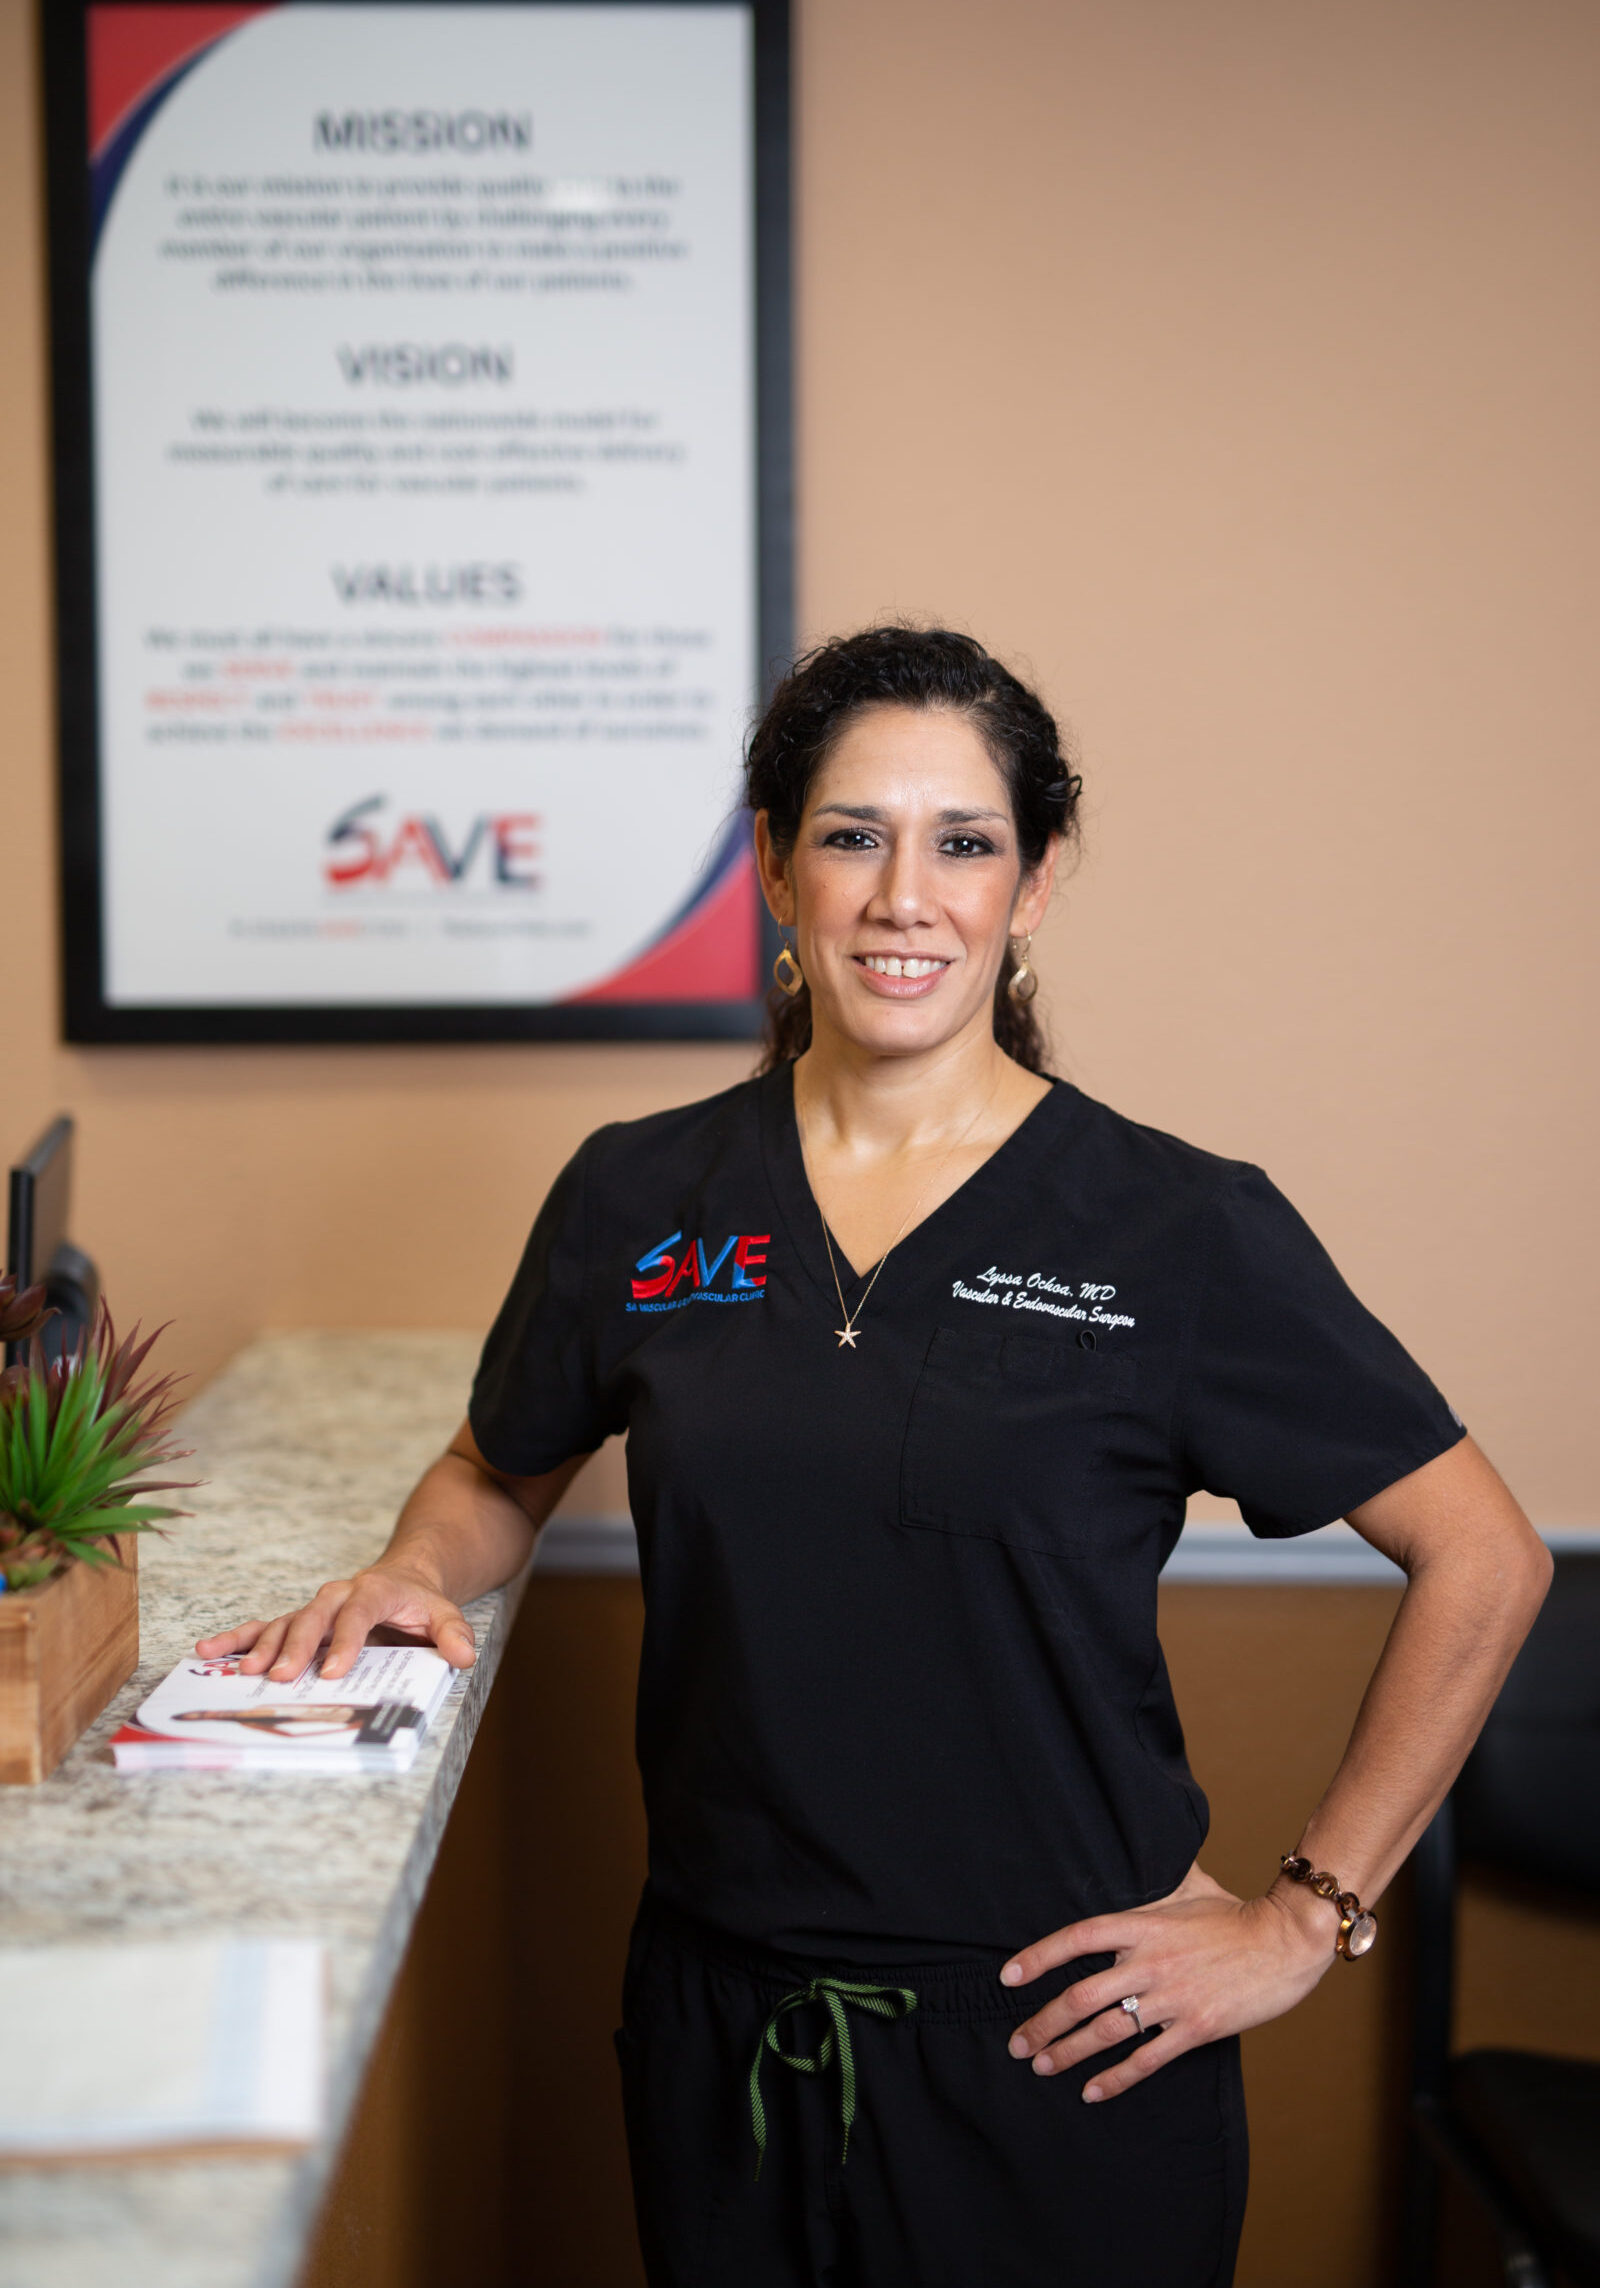 Dr Ochoa from MD Monthly 1